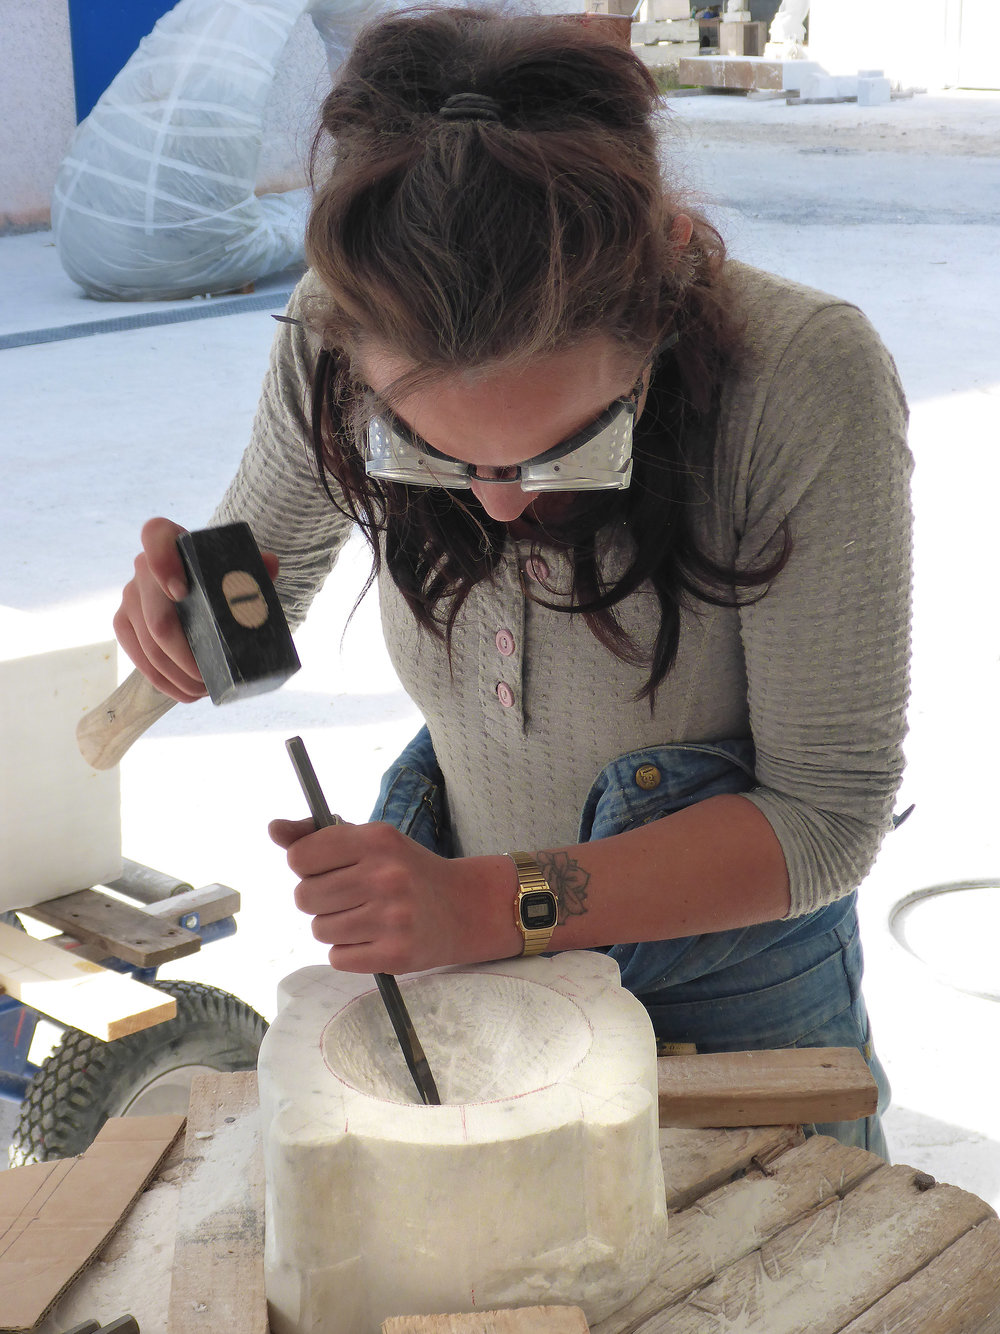 Amelia-Kate-Sampson-Carving-Marble.jpg